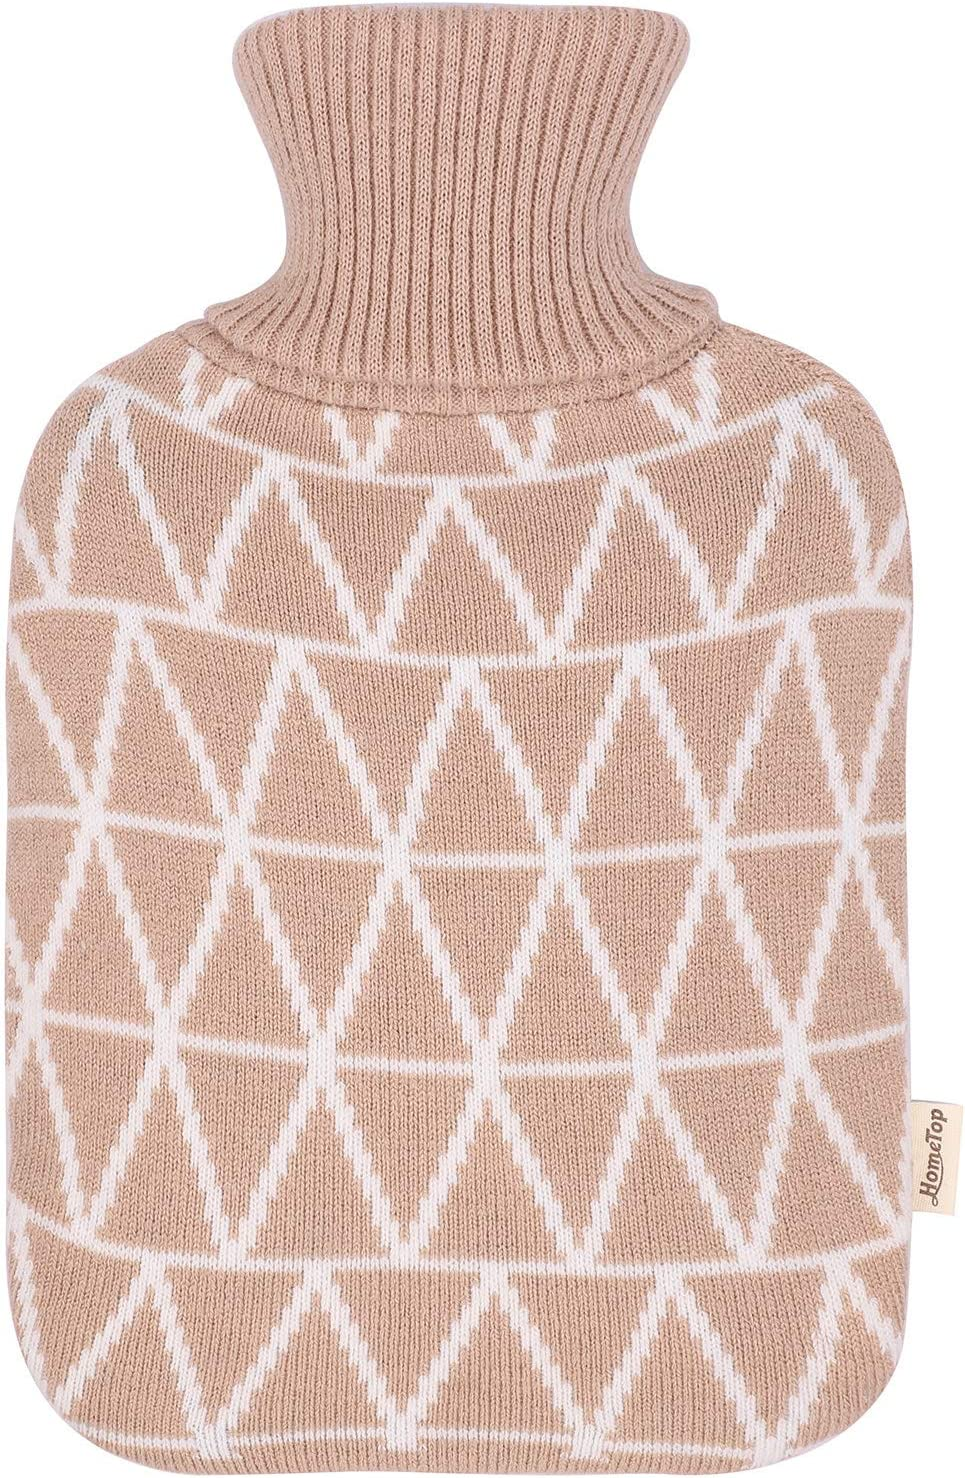 2 Liter Beige Classic Rubber Hot Water Bottle with Classic Yarn Knit Diamond Check Cover by HomeTop